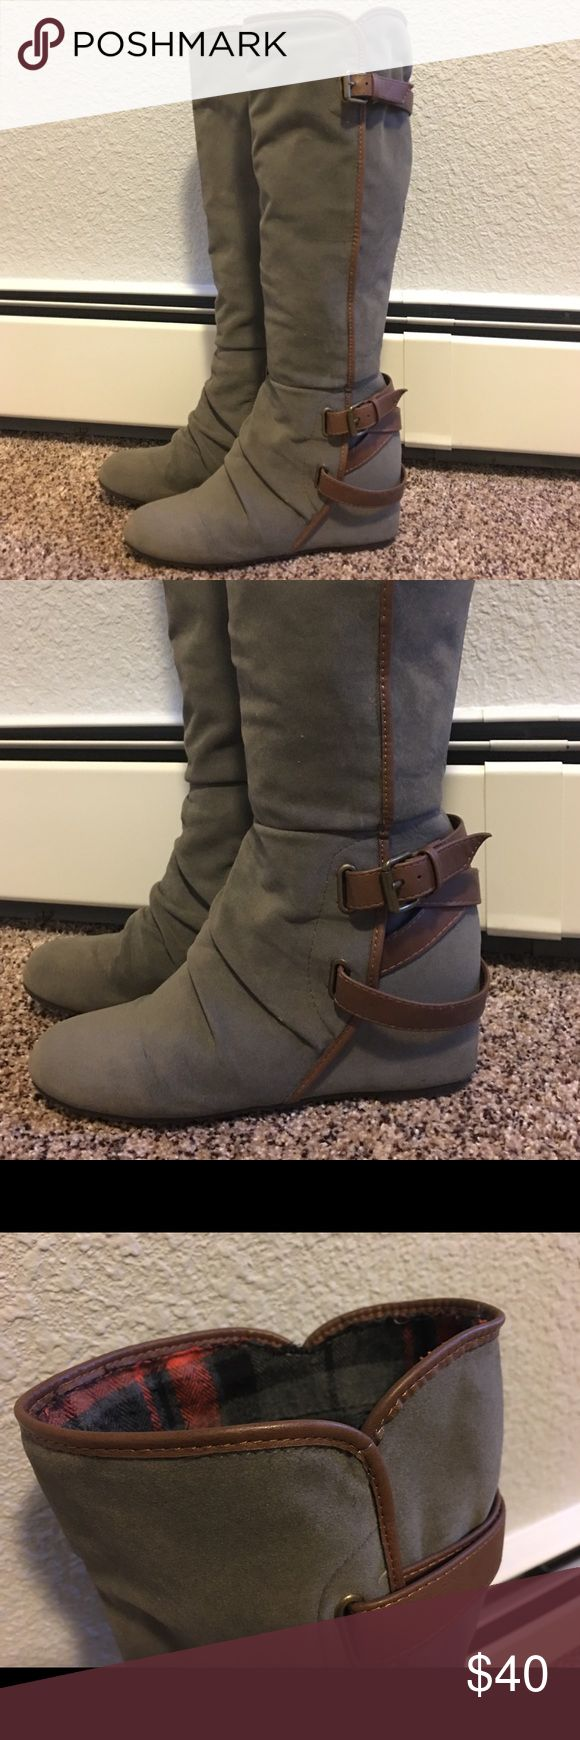 Aldo Boots Grey suede Brown buckle boots.  Good condition.  No marks.  Pre-loved. Aldo Shoes Heeled Boots